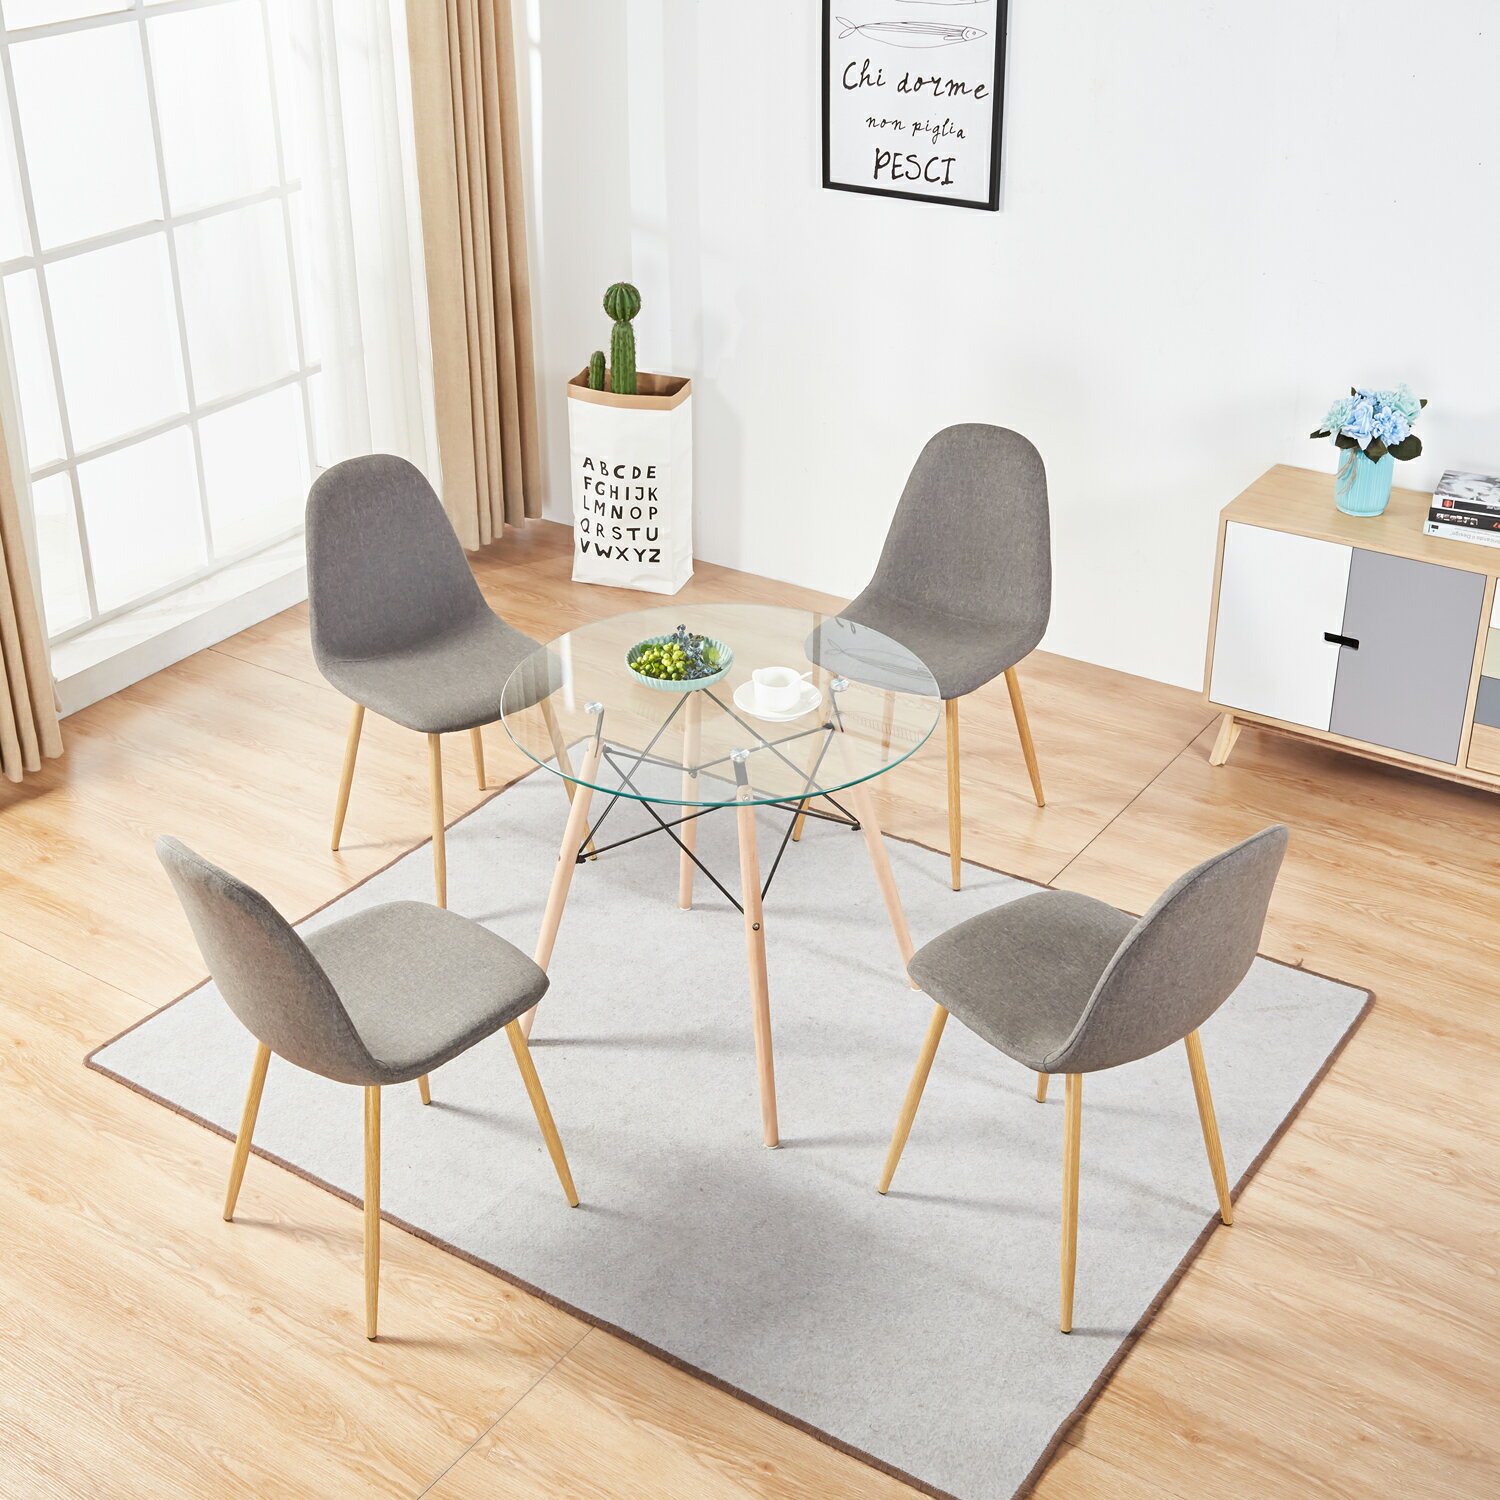 Mcombo Dining Side Chairs Set of 4Dining Table Round Clear Glass Table for Kitchen  sc 1 st  Rakuten & mcombo: Mcombo Dining Side Chairs Set of 4Dining Table Round Clear ...